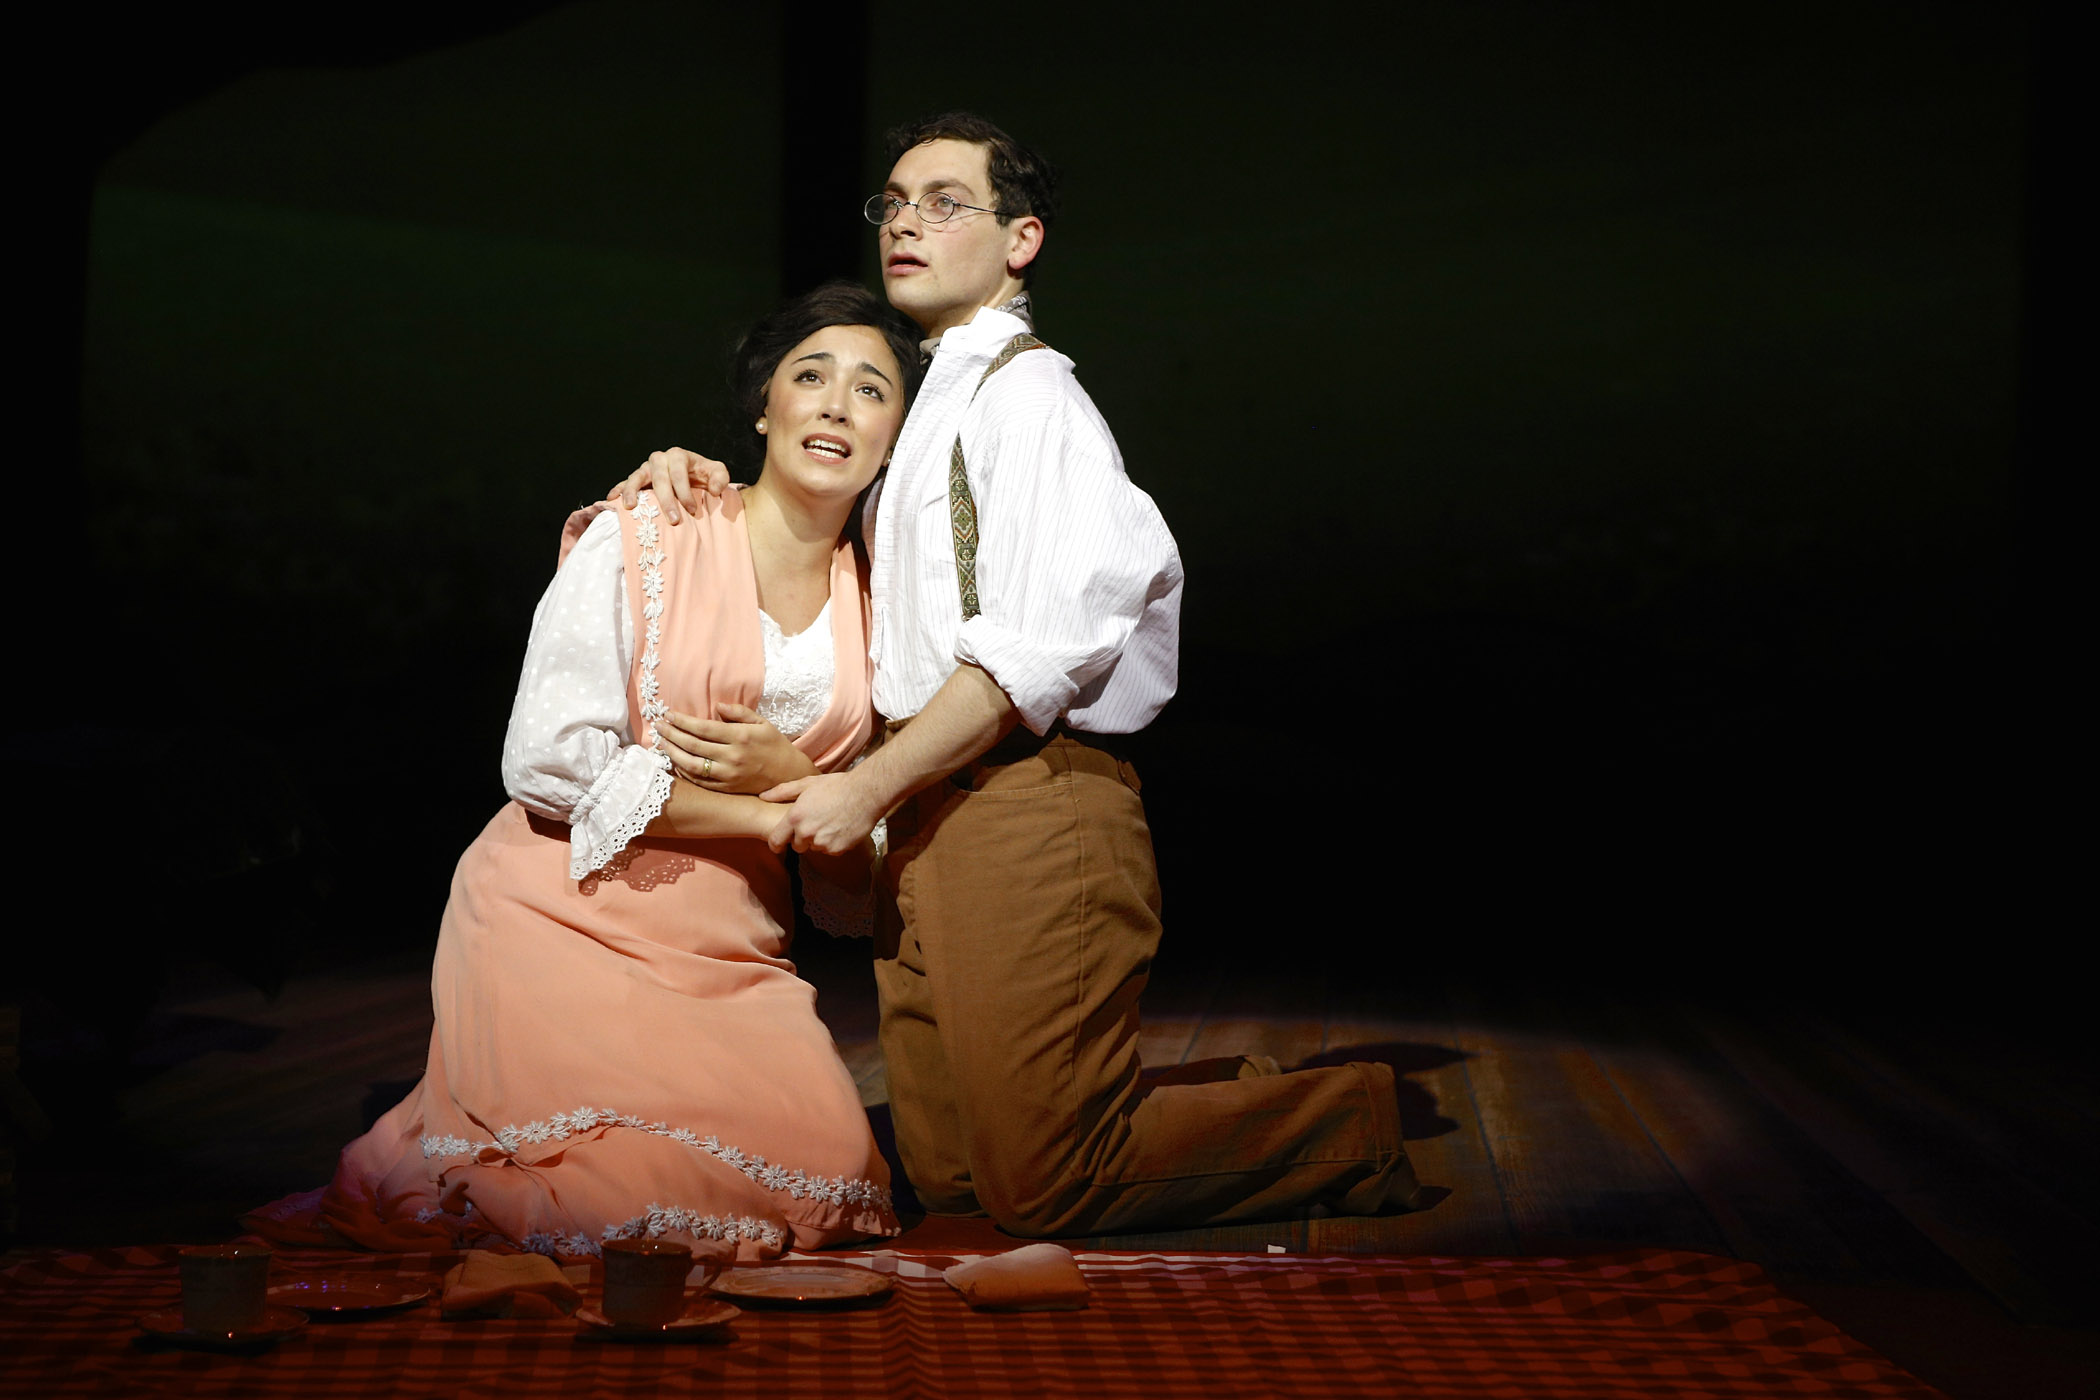 Ana Marcu and Ethan Saviet in the SU Drama production of Parade. Photographer Michael Davis.